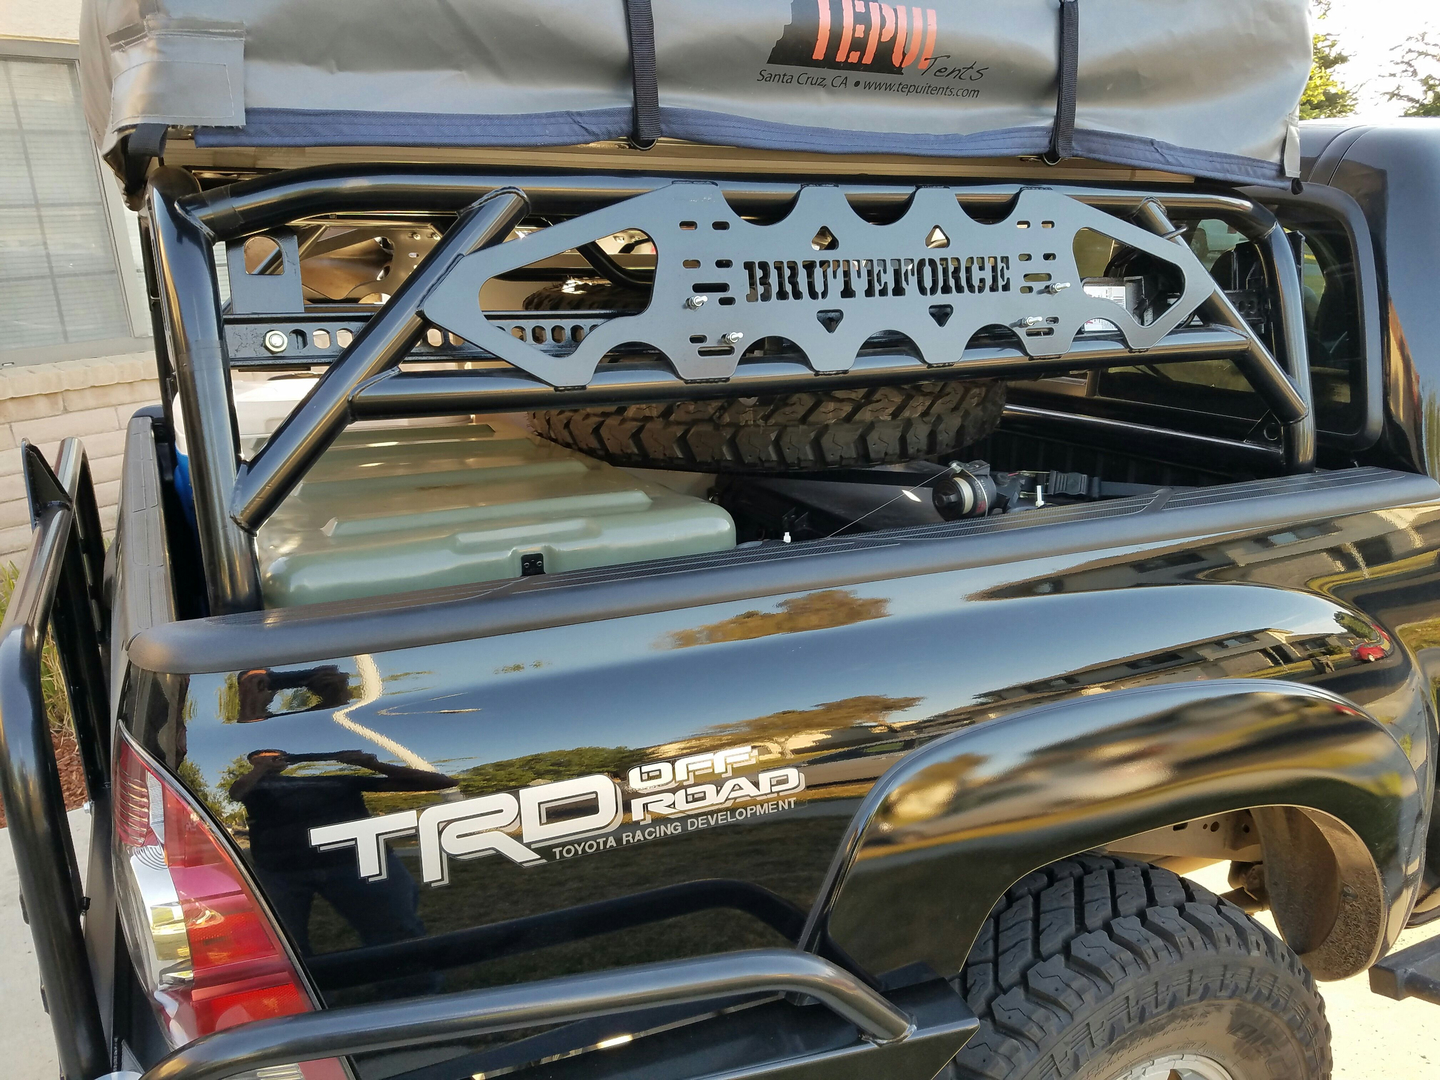 Toyota Tacoma Bed Cage